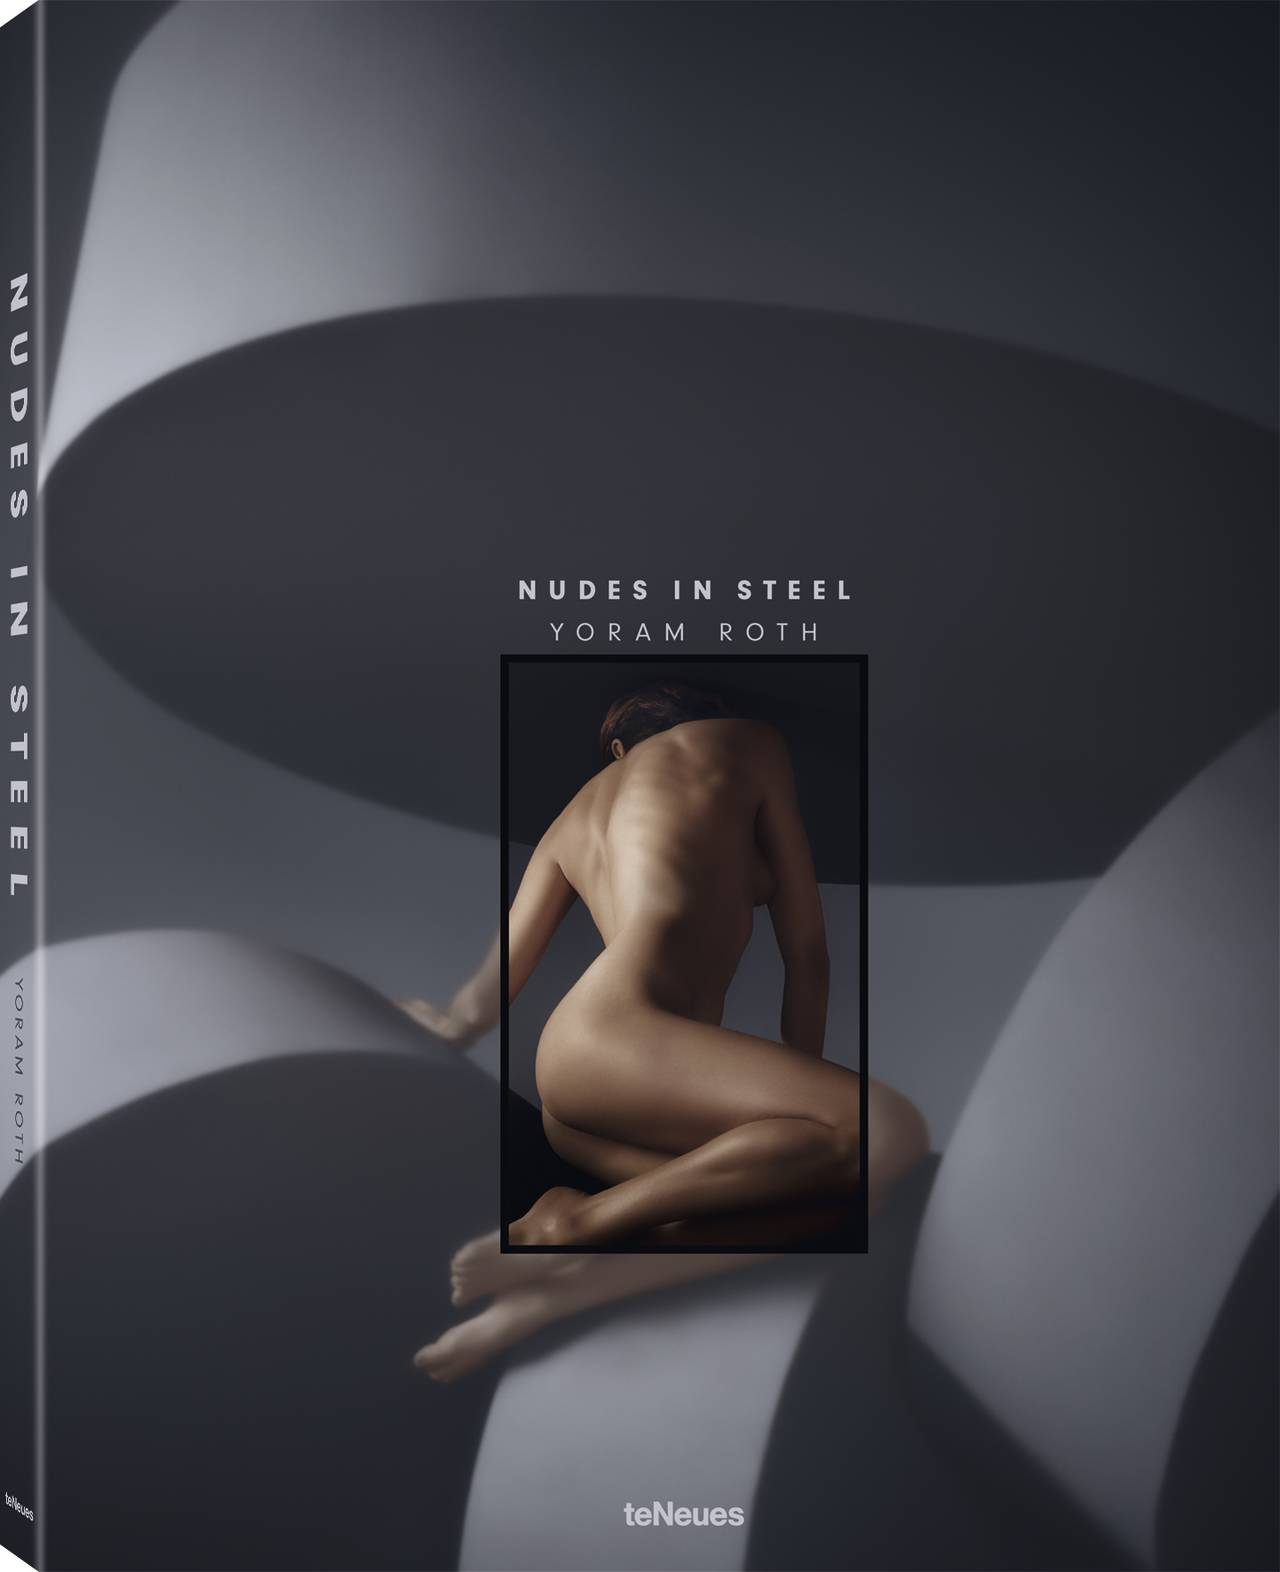 © Nudes in Steel by Yoram Roth, published by teNeues, www.teneues.com, Roarie turning away, Brutalism, Photo © 2018 Yoram Roth. All rights reserved. www.yoramroth.com